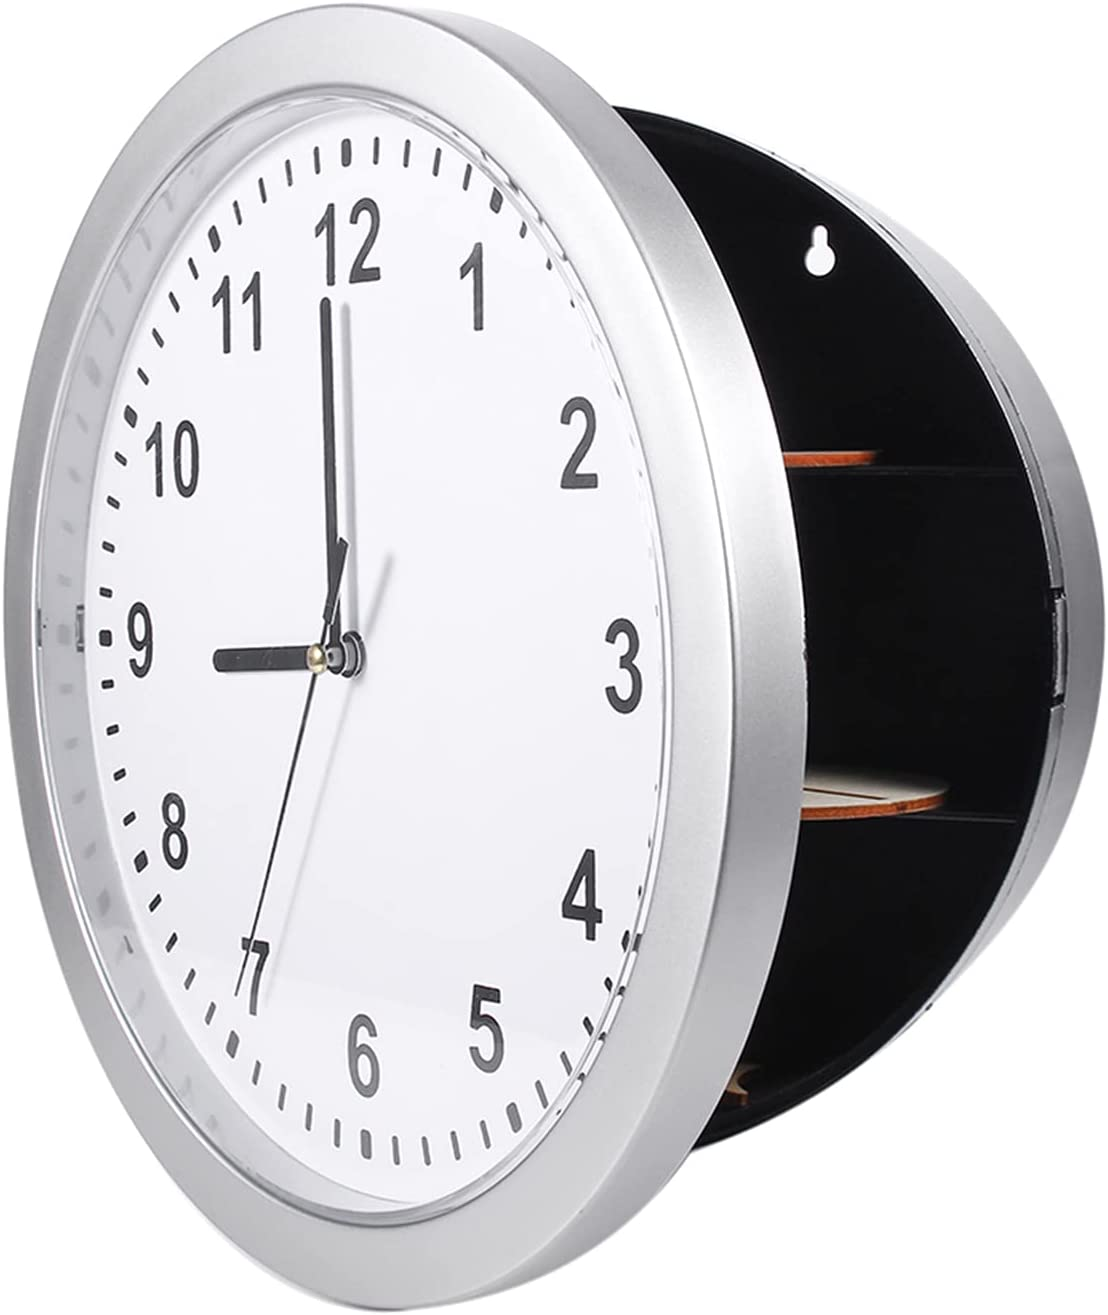 Yosoo Health Gear Animer and Reservation price revision Clock Safe Diversion Secre Hidden Compartment